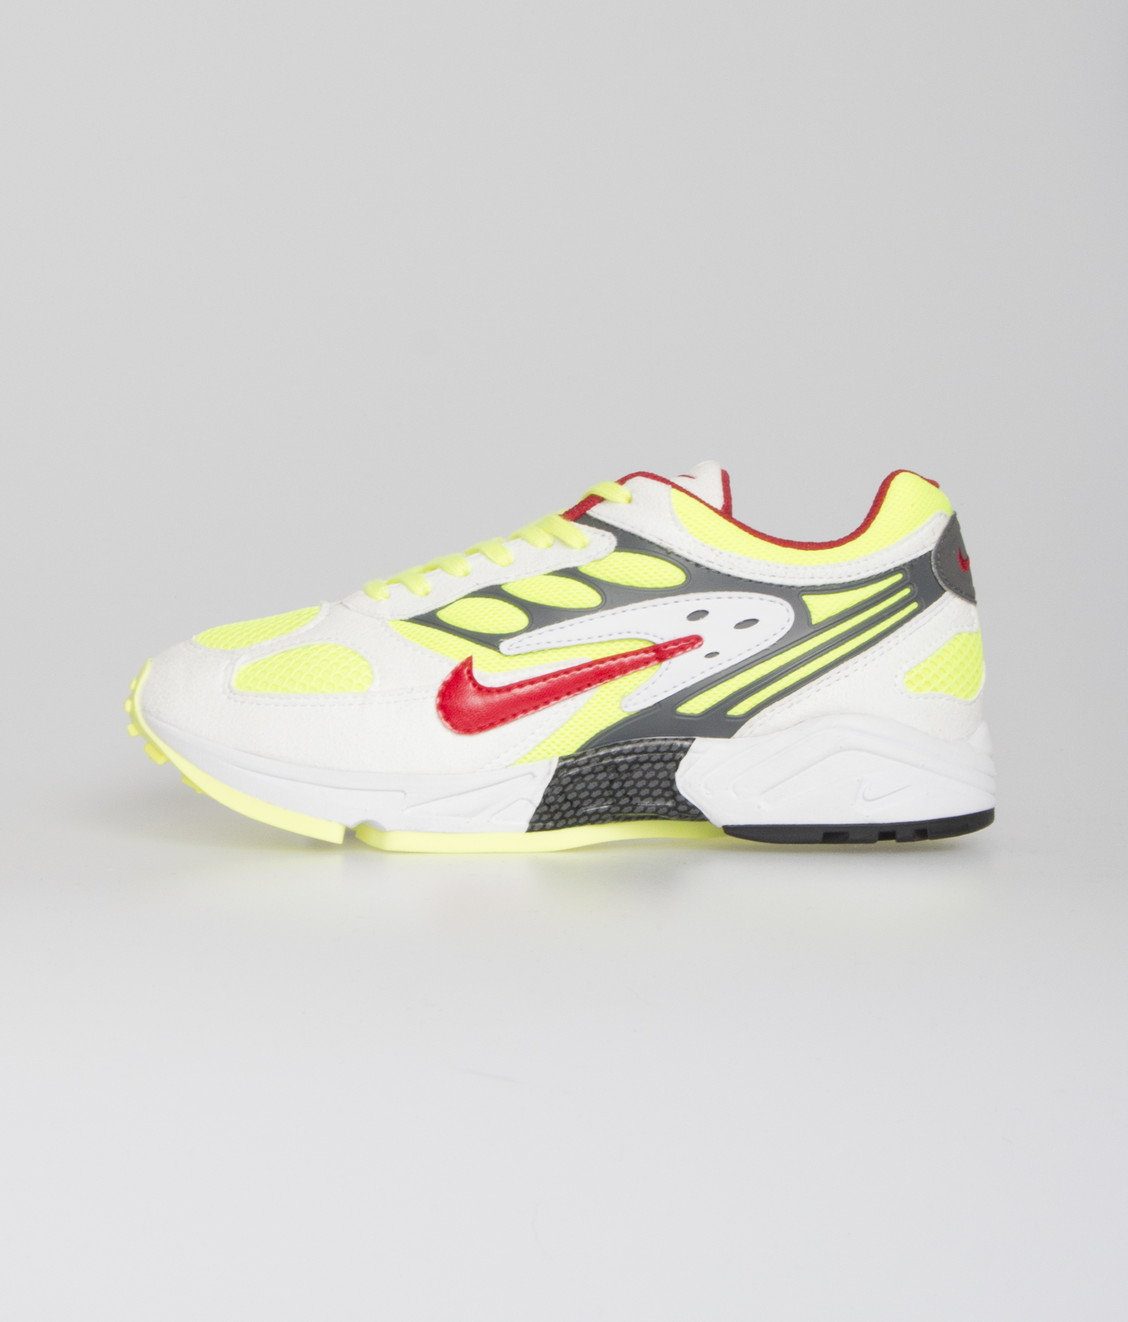 Nike Nike Air Ghost Racer White Neon Yellow